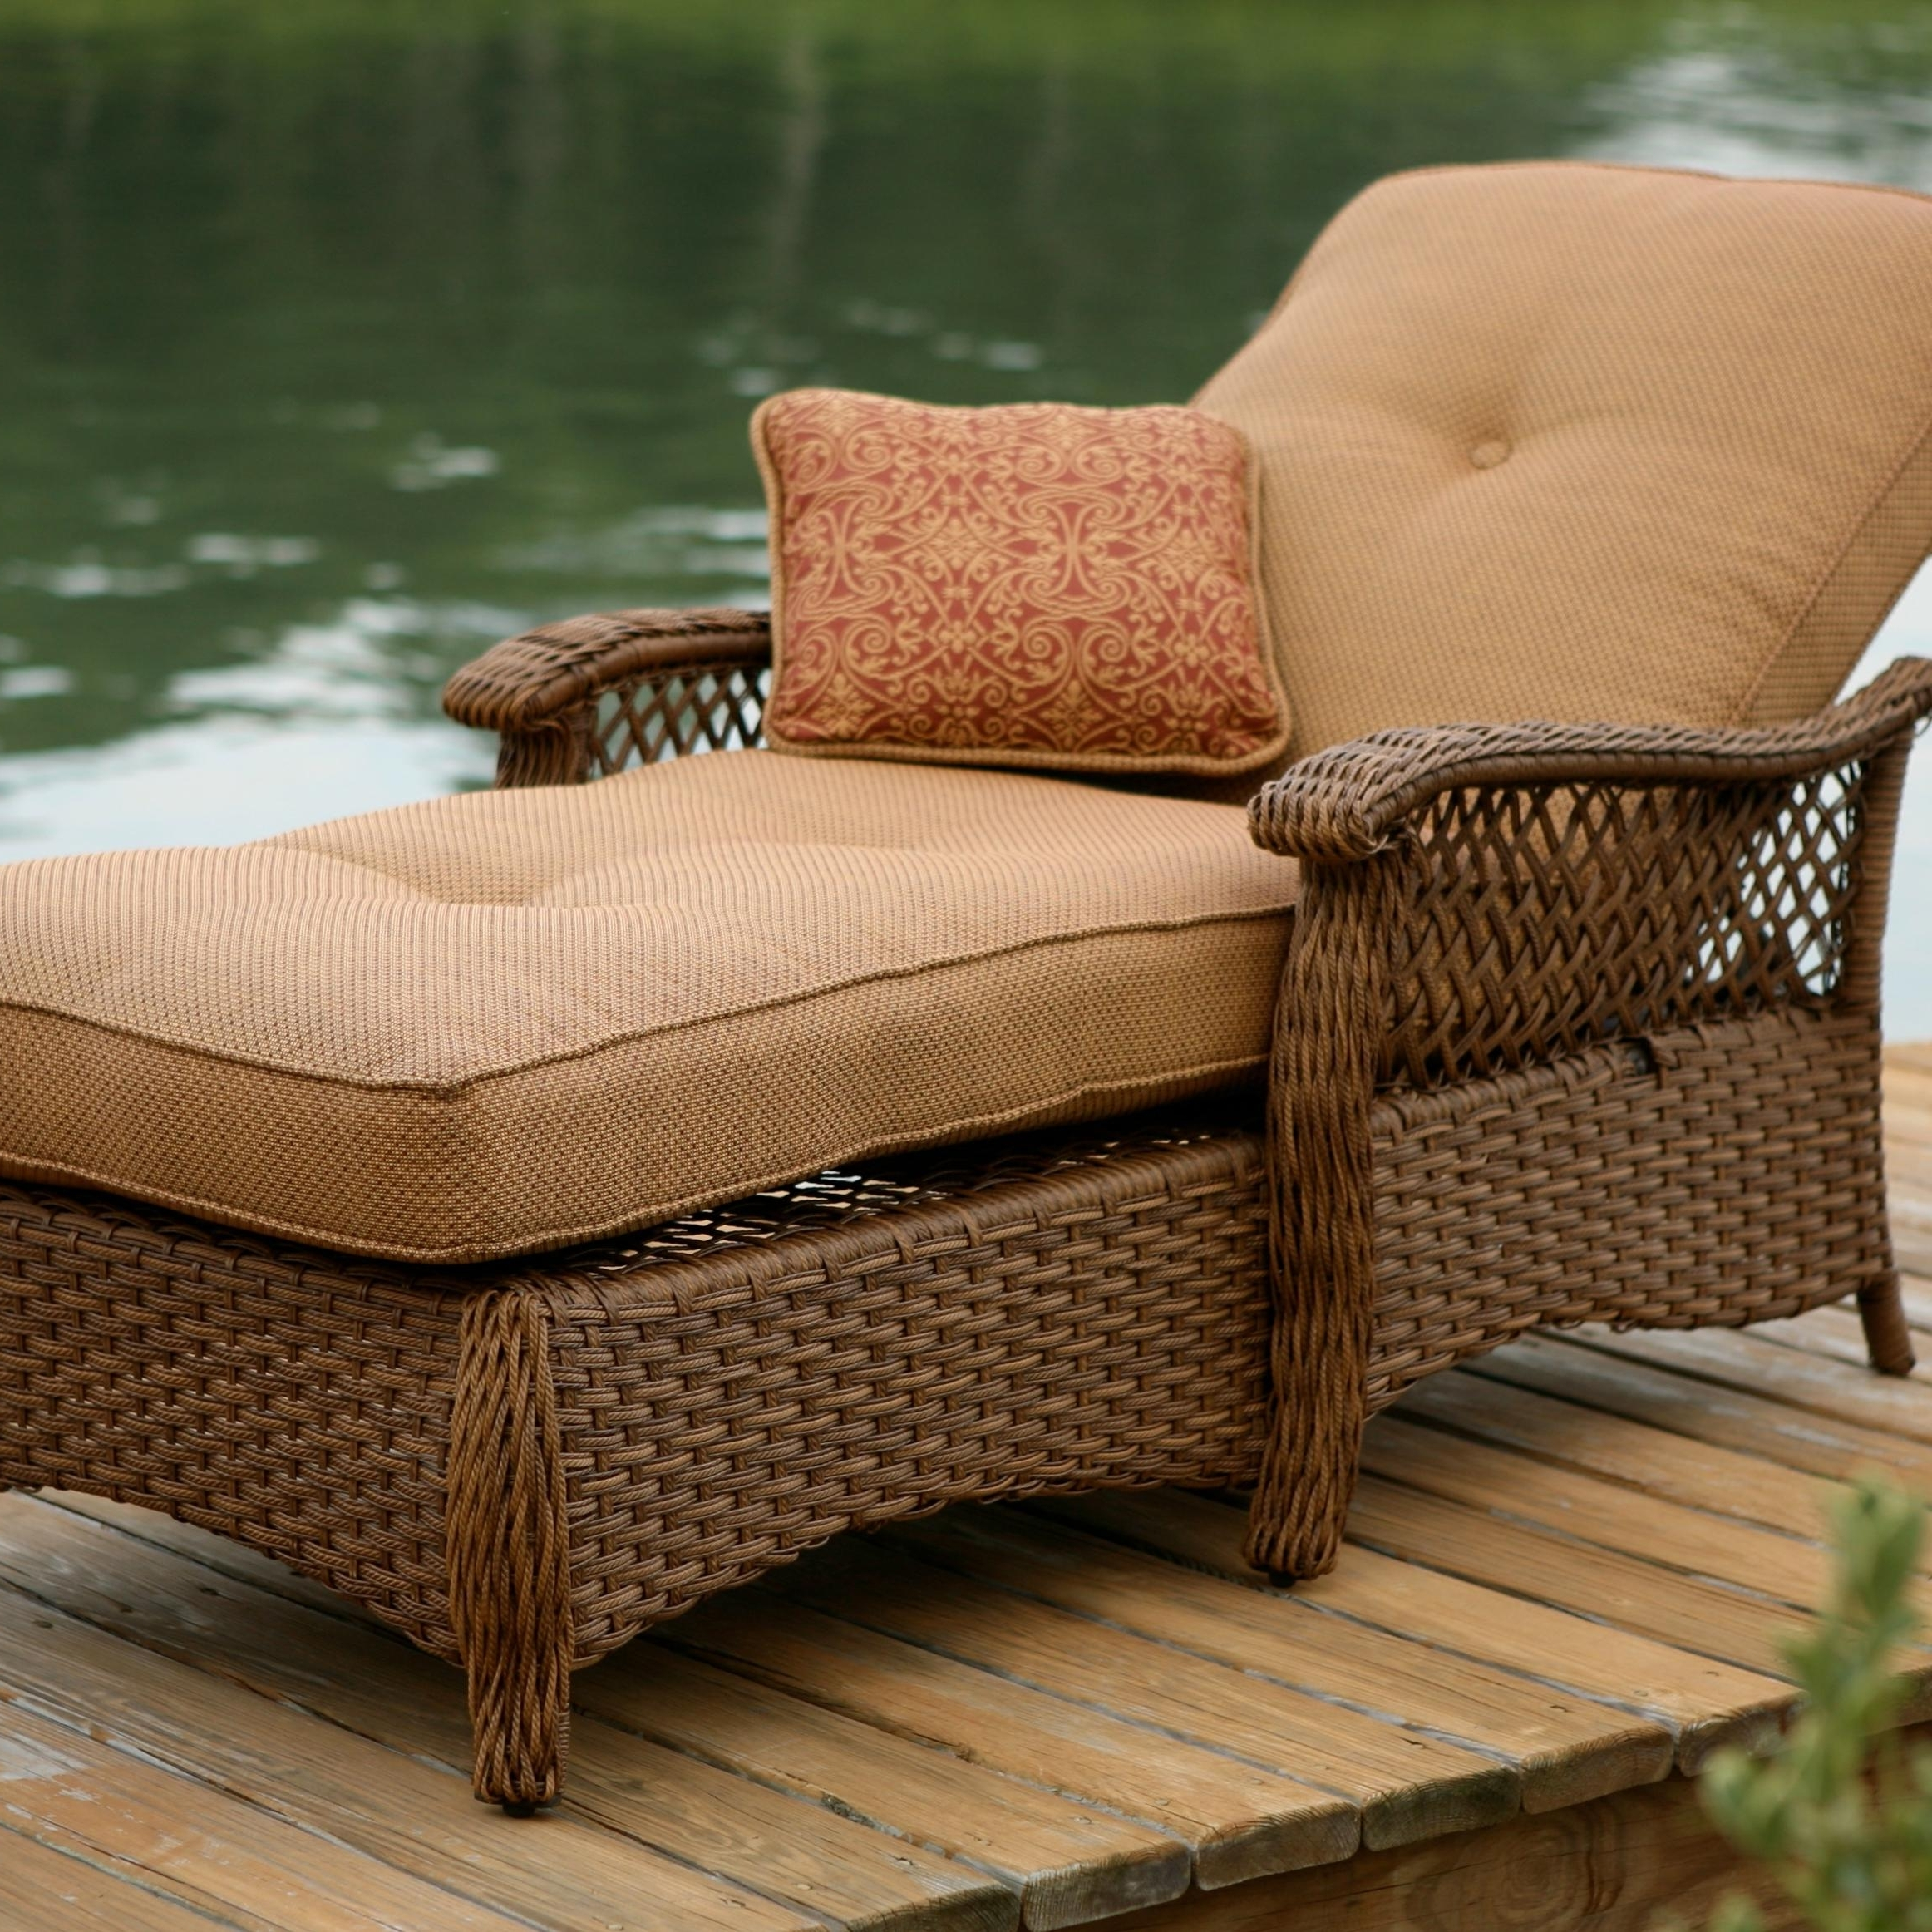 Outdoor Chaise Lounge Chairs With Arms Regarding Most Current Agio Veranda–Agio Outdoor Tan Woven Chaise Lounge Chair With Seat (View 8 of 15)